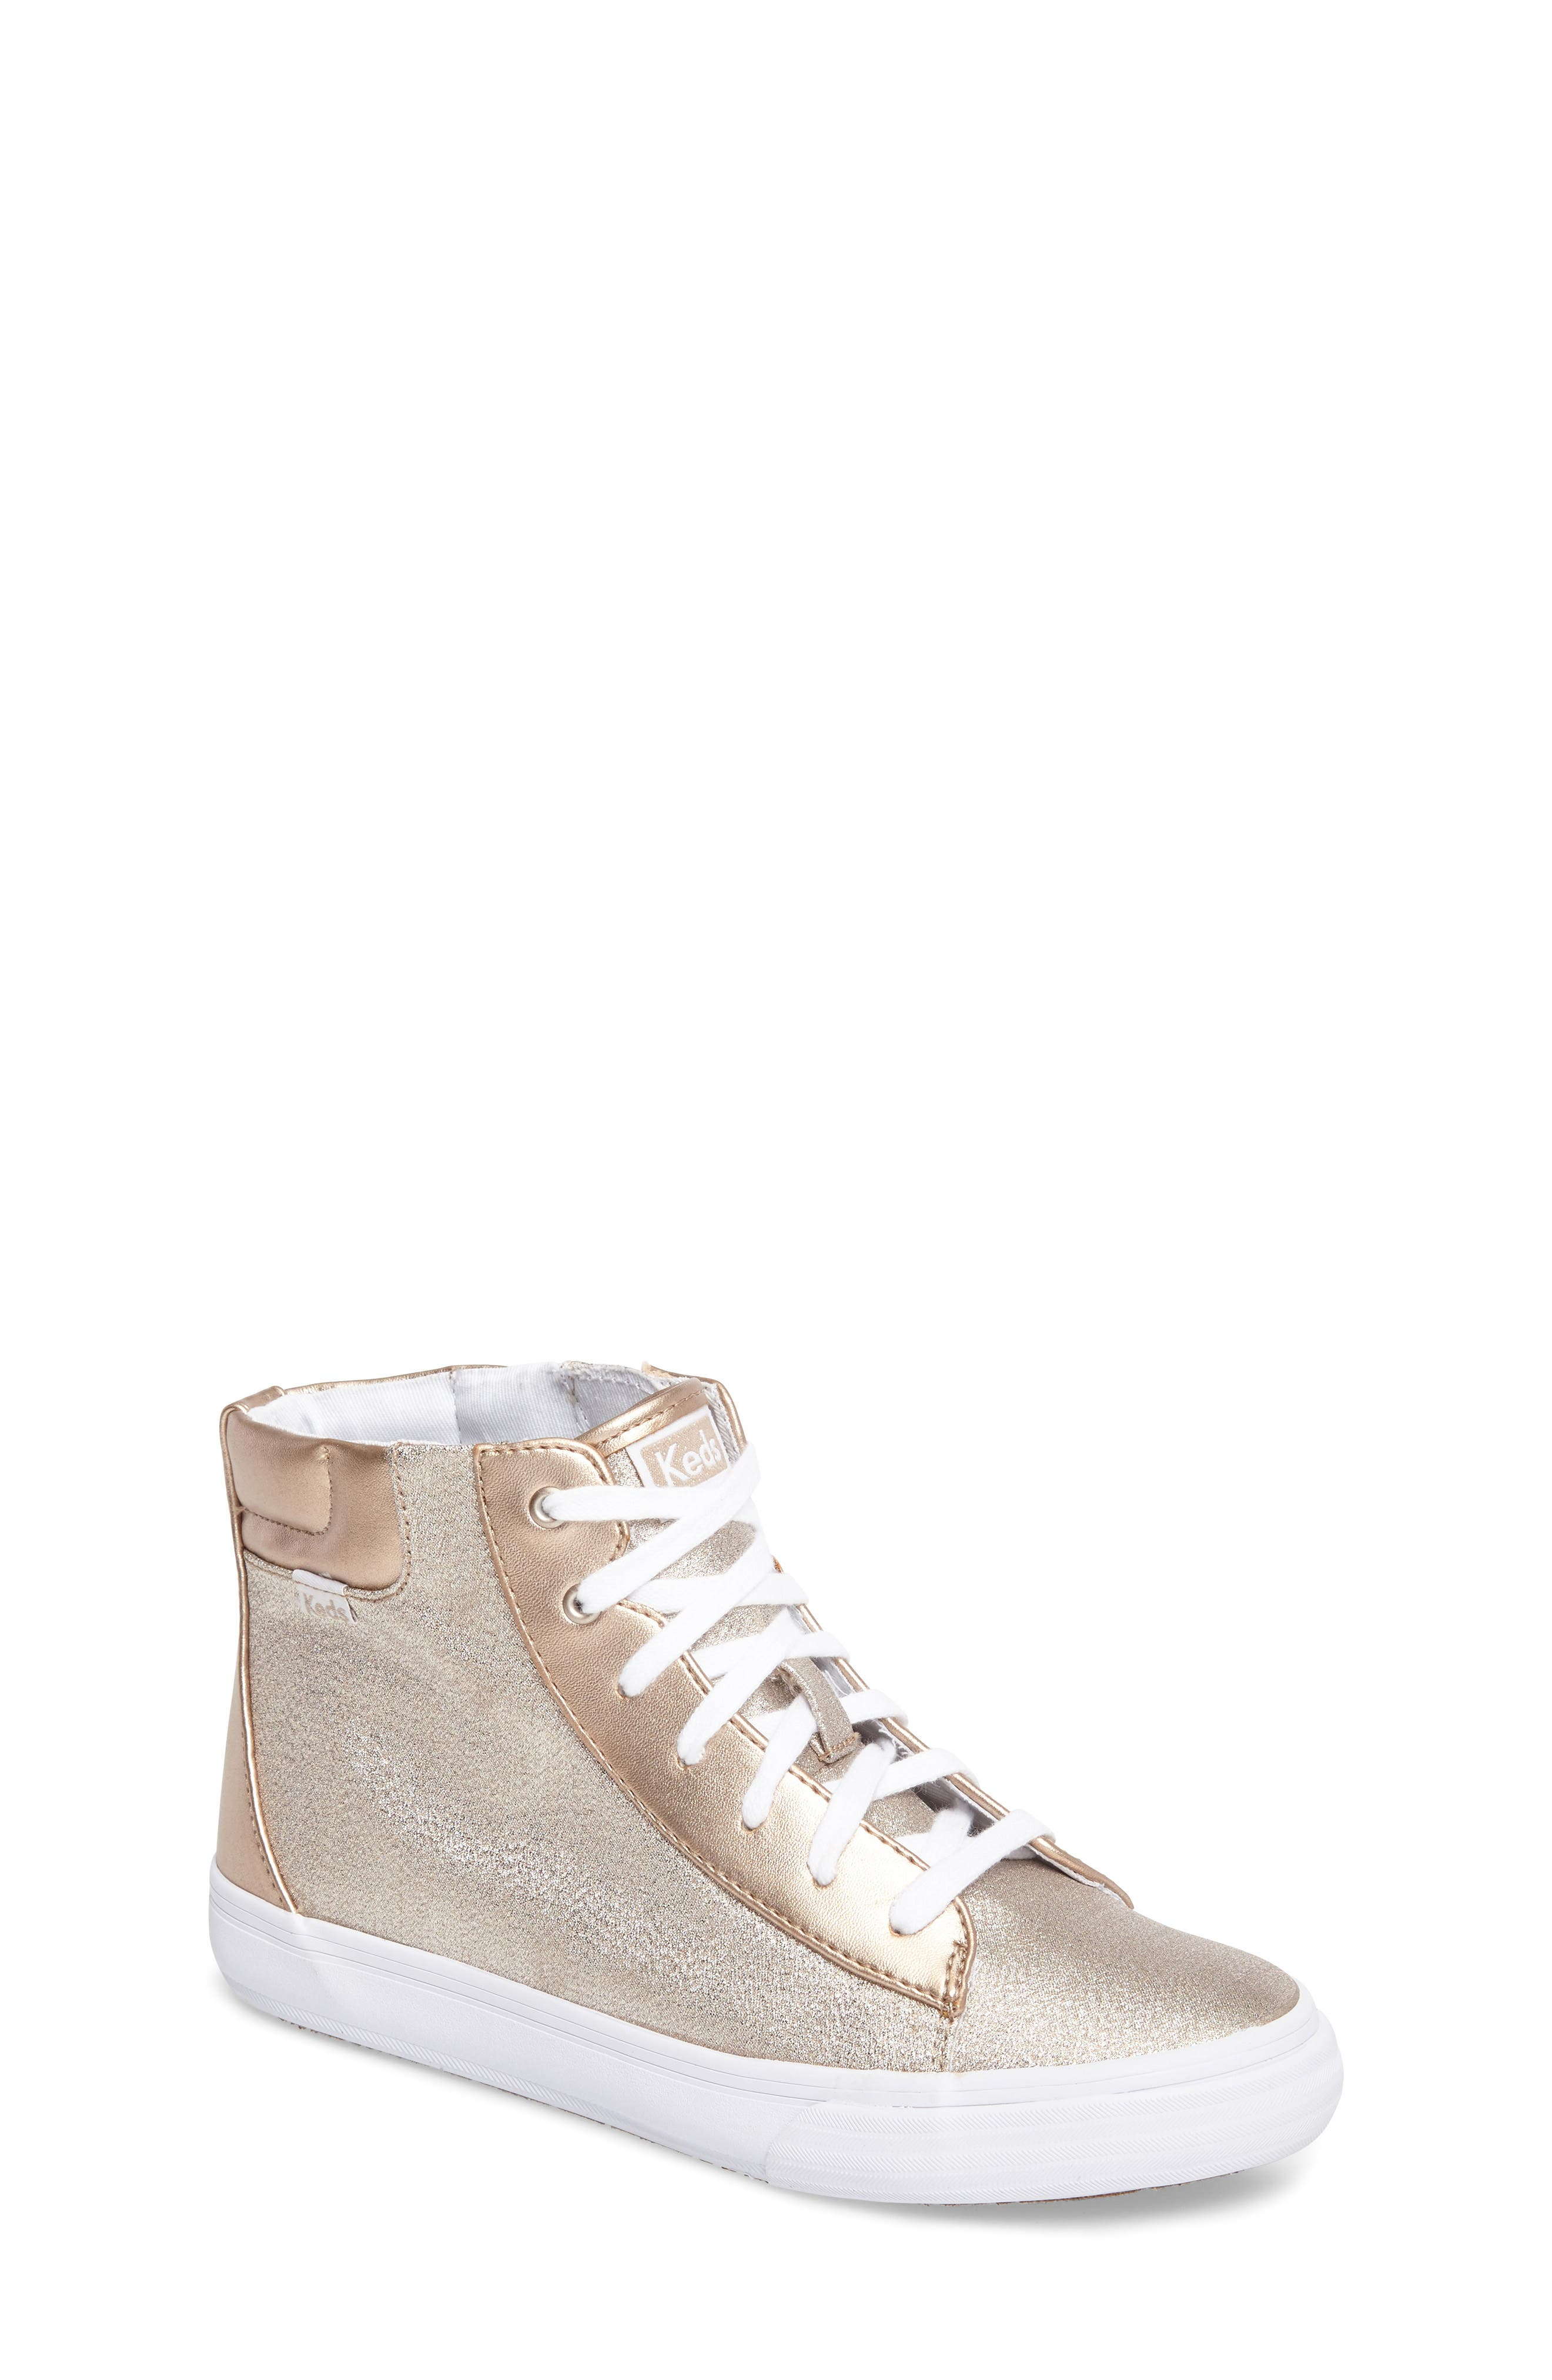 Double Up High Top Sneaker,                         Main,                         color, 220